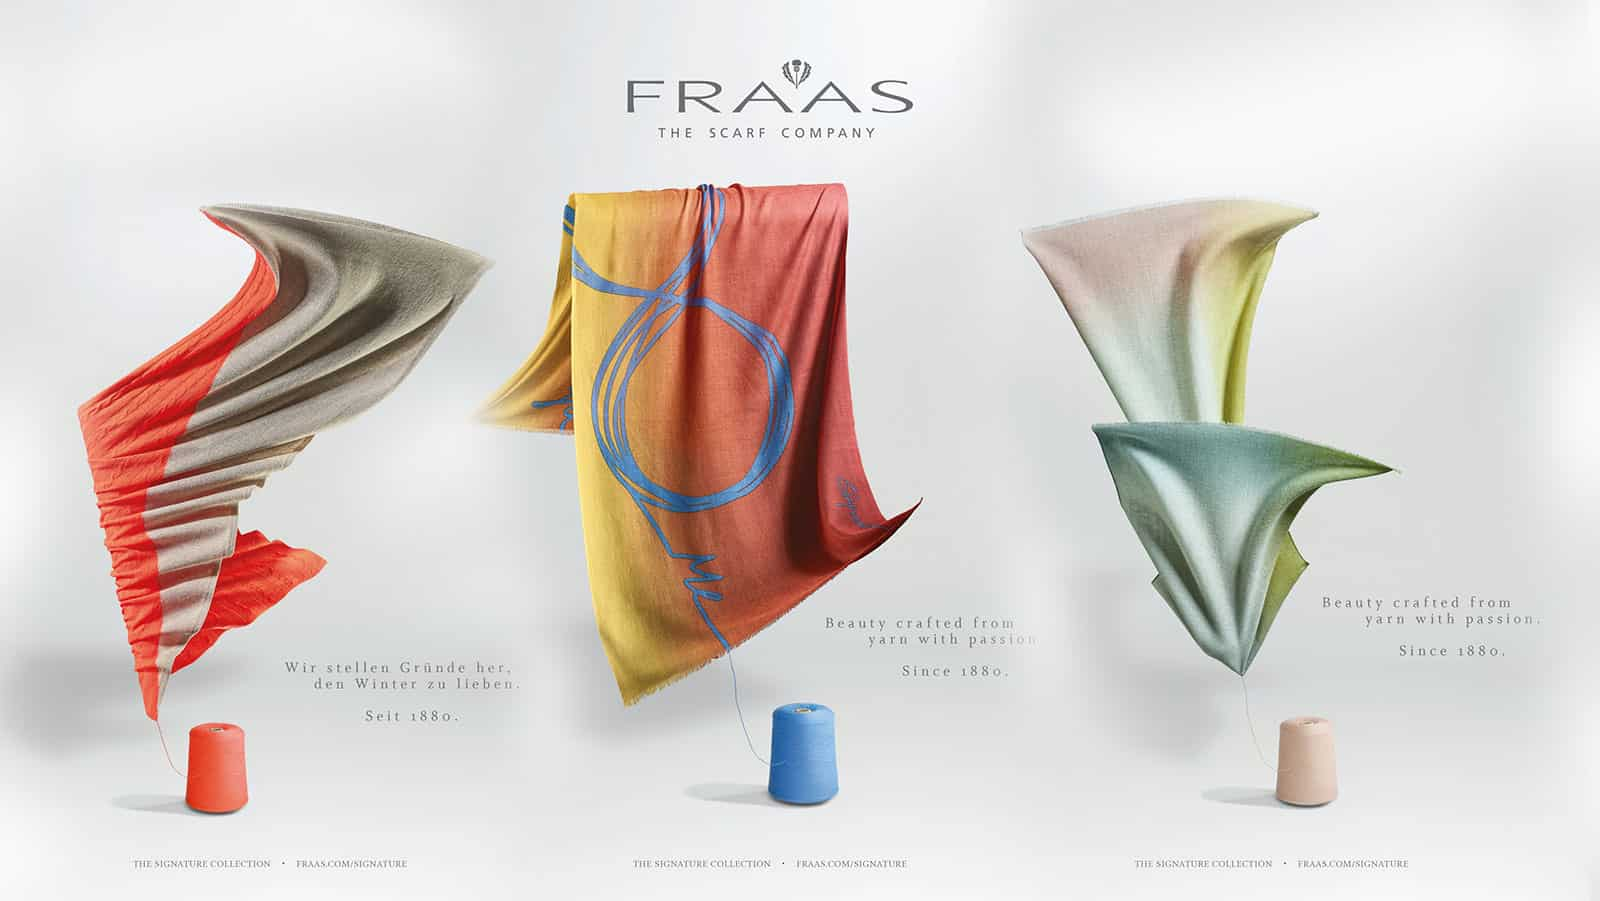 Fraas The Signatur Collection